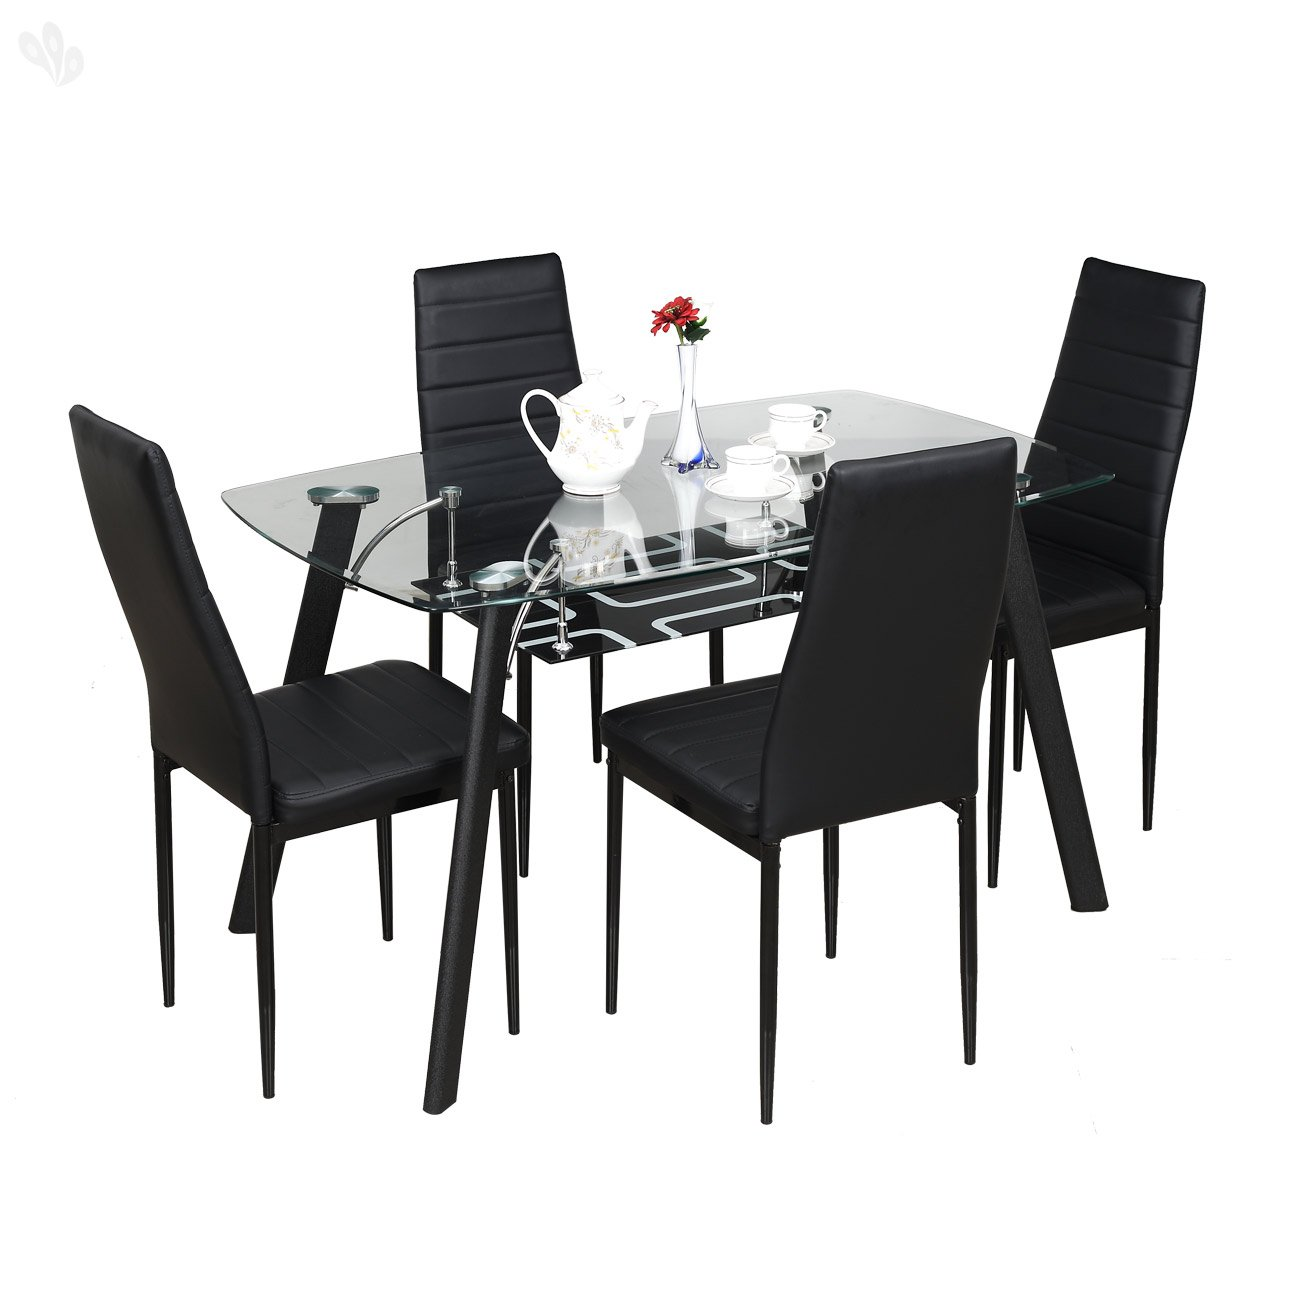 Royal oak milan four seater dining table set black for The best dining tables